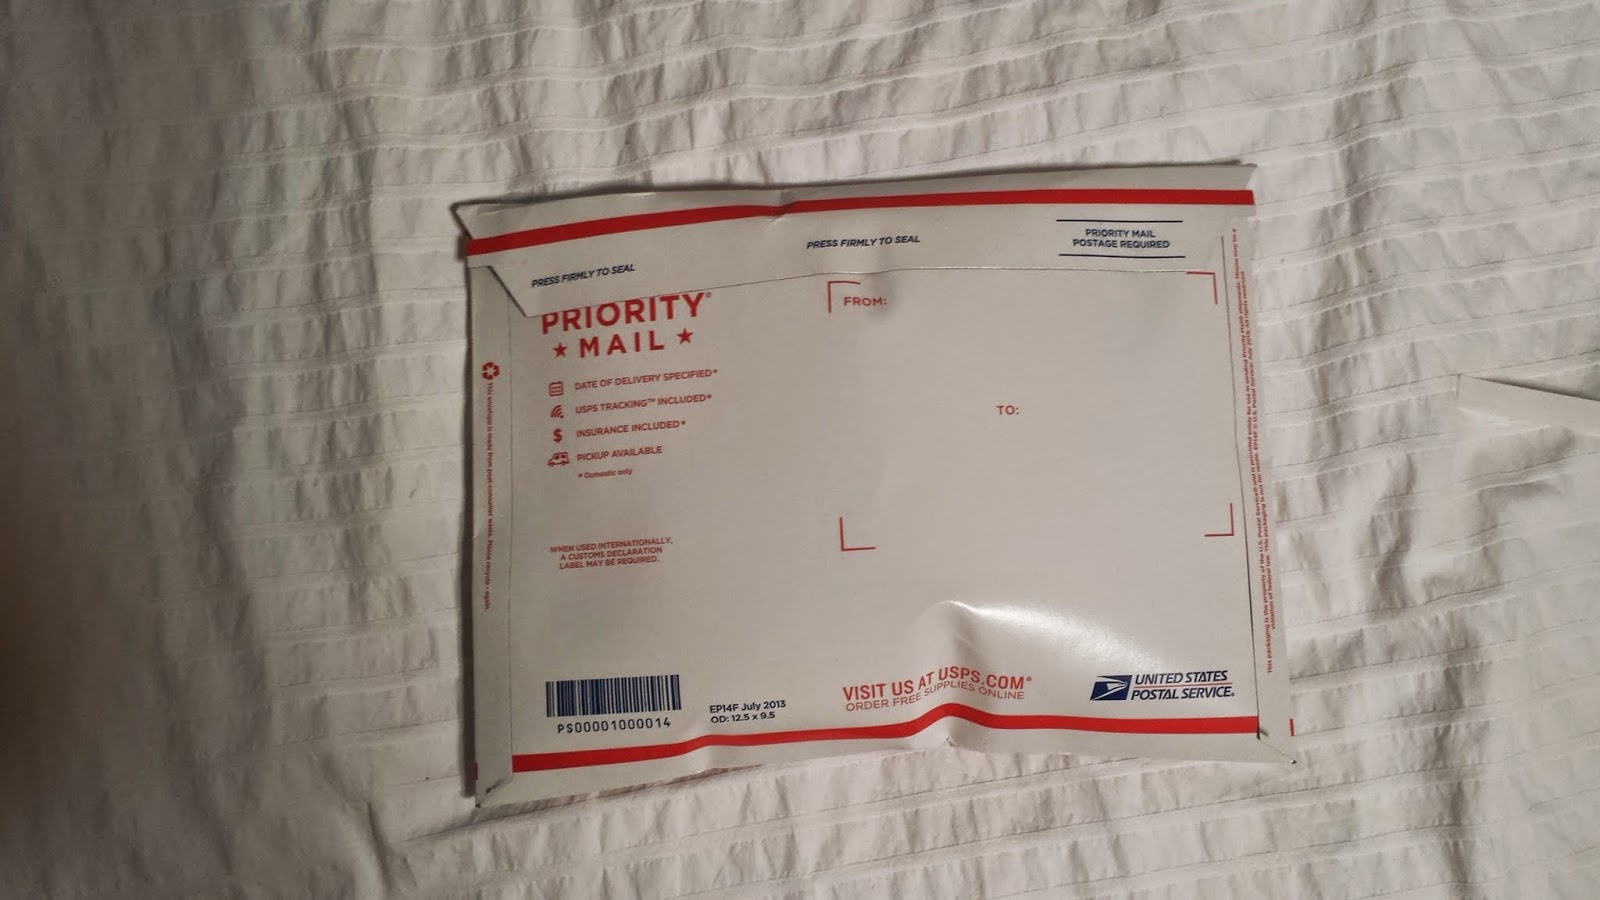 Flat Rate Envelope I Would Suggest Shipping With The Priority Medium Size Box Or By Weight Tyvek Bag It Should Be A Fine Fit